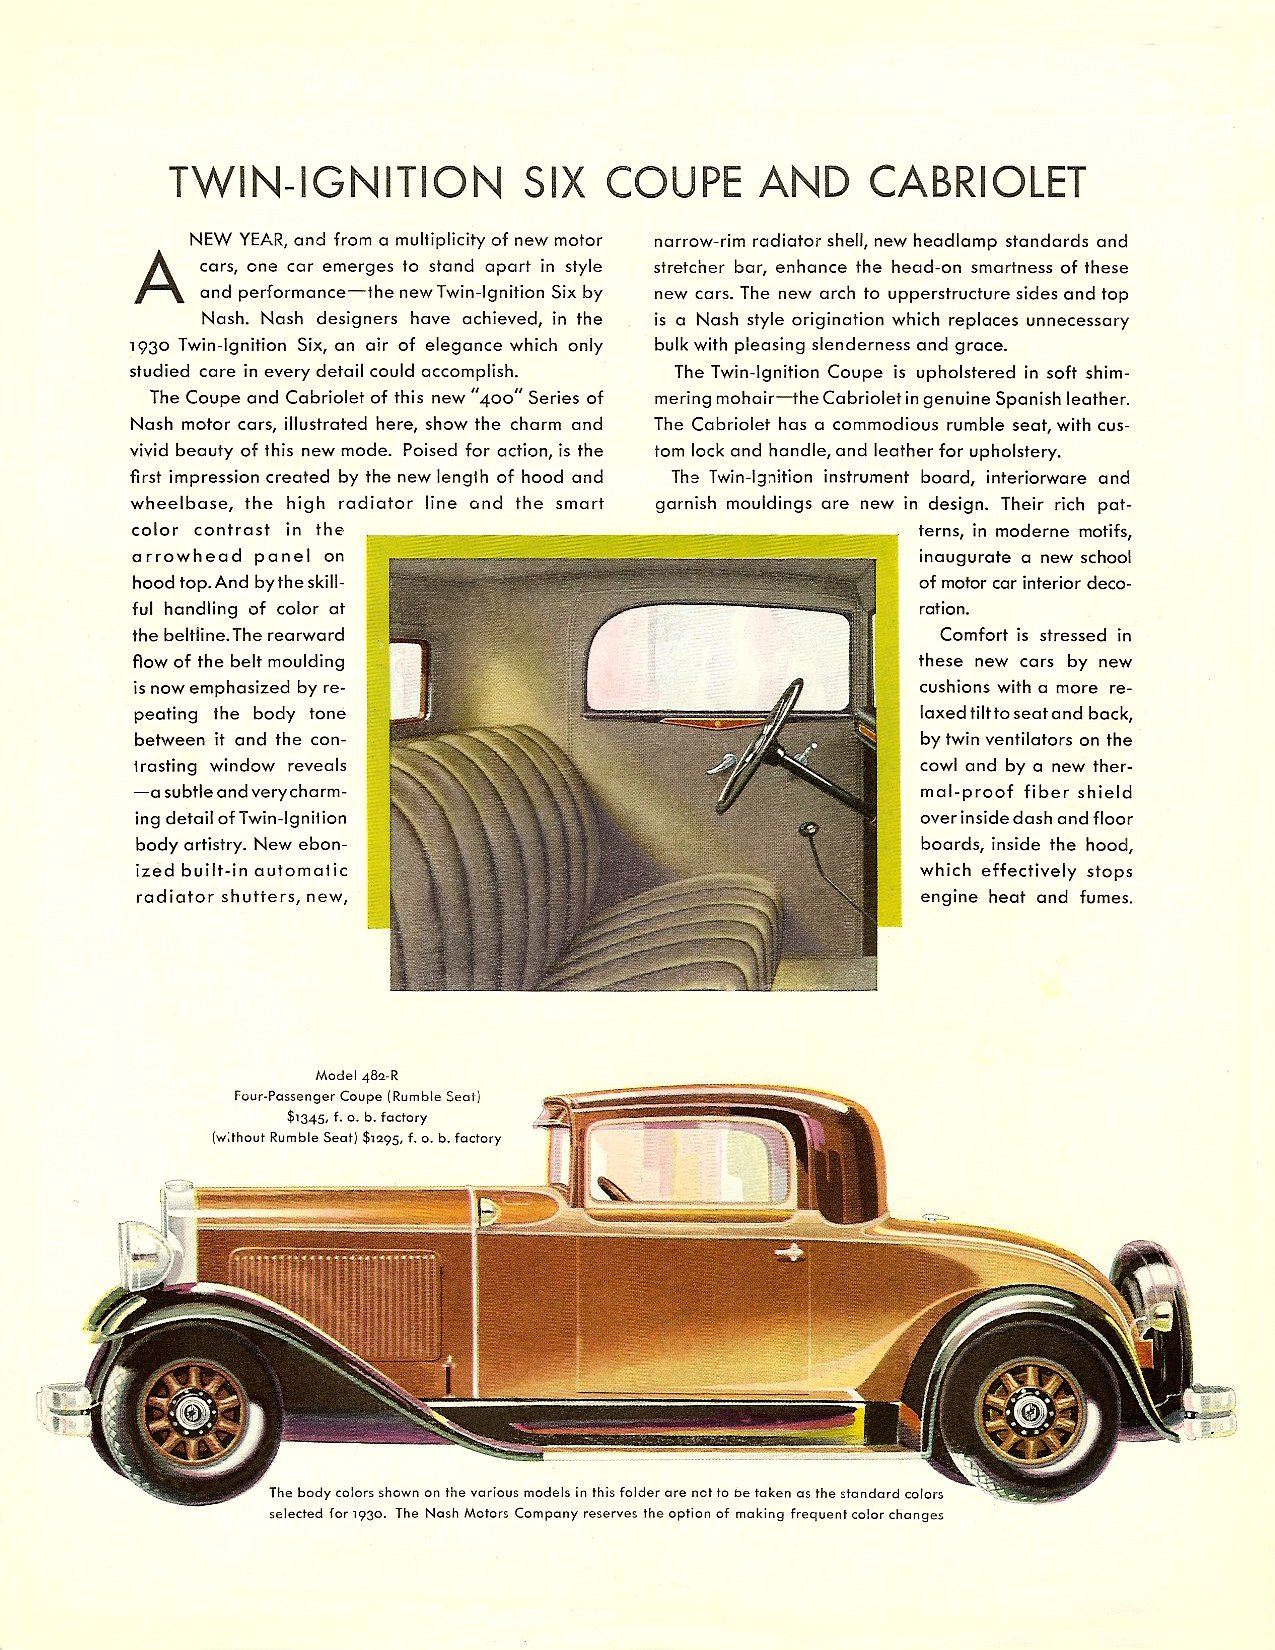 "NASH ""400"" series for 1930 TWIN IGNITION SIX Coupe • Cabriolet Page 1, 8.5″x11″"